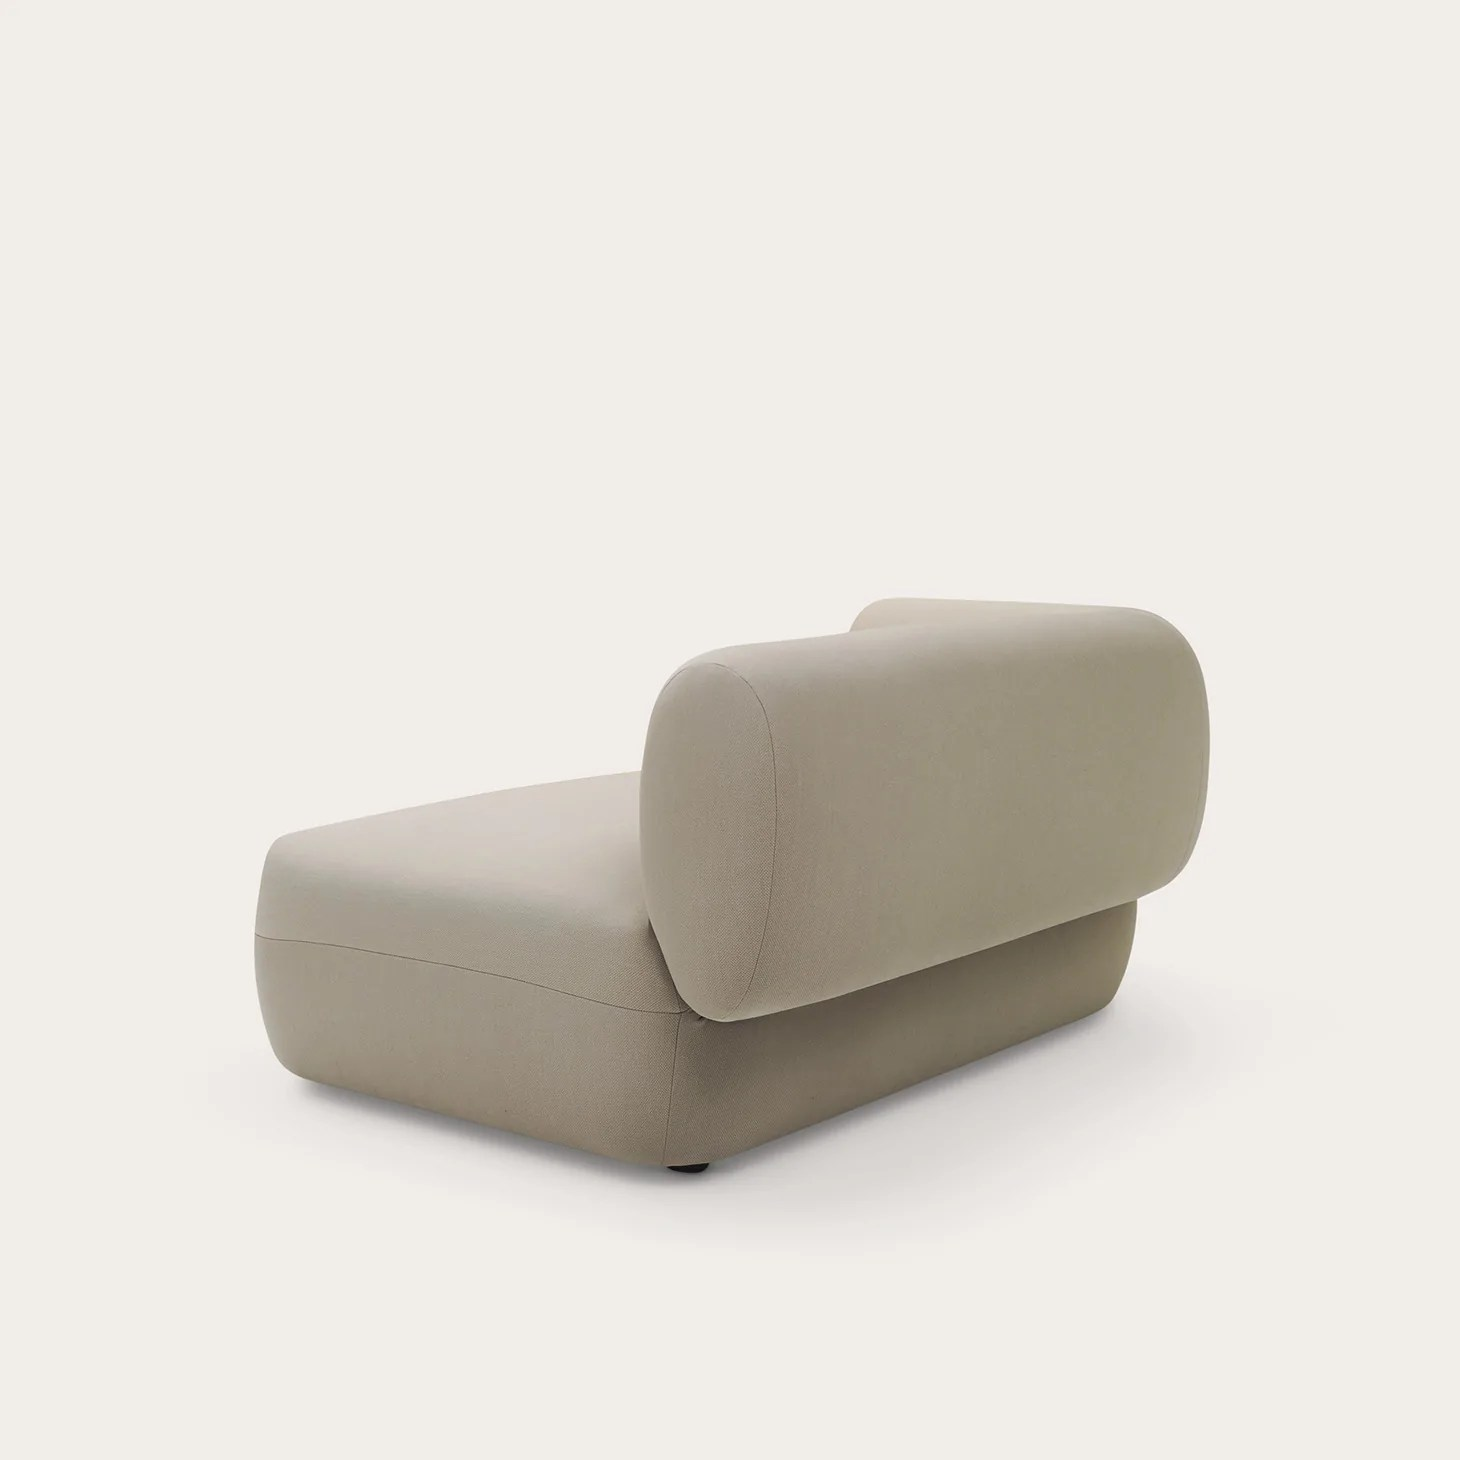 Sofa Arm Tray South Africa Arp Sofa One Arm Sofas By Sebastian Herkner Avenue Road Avenue